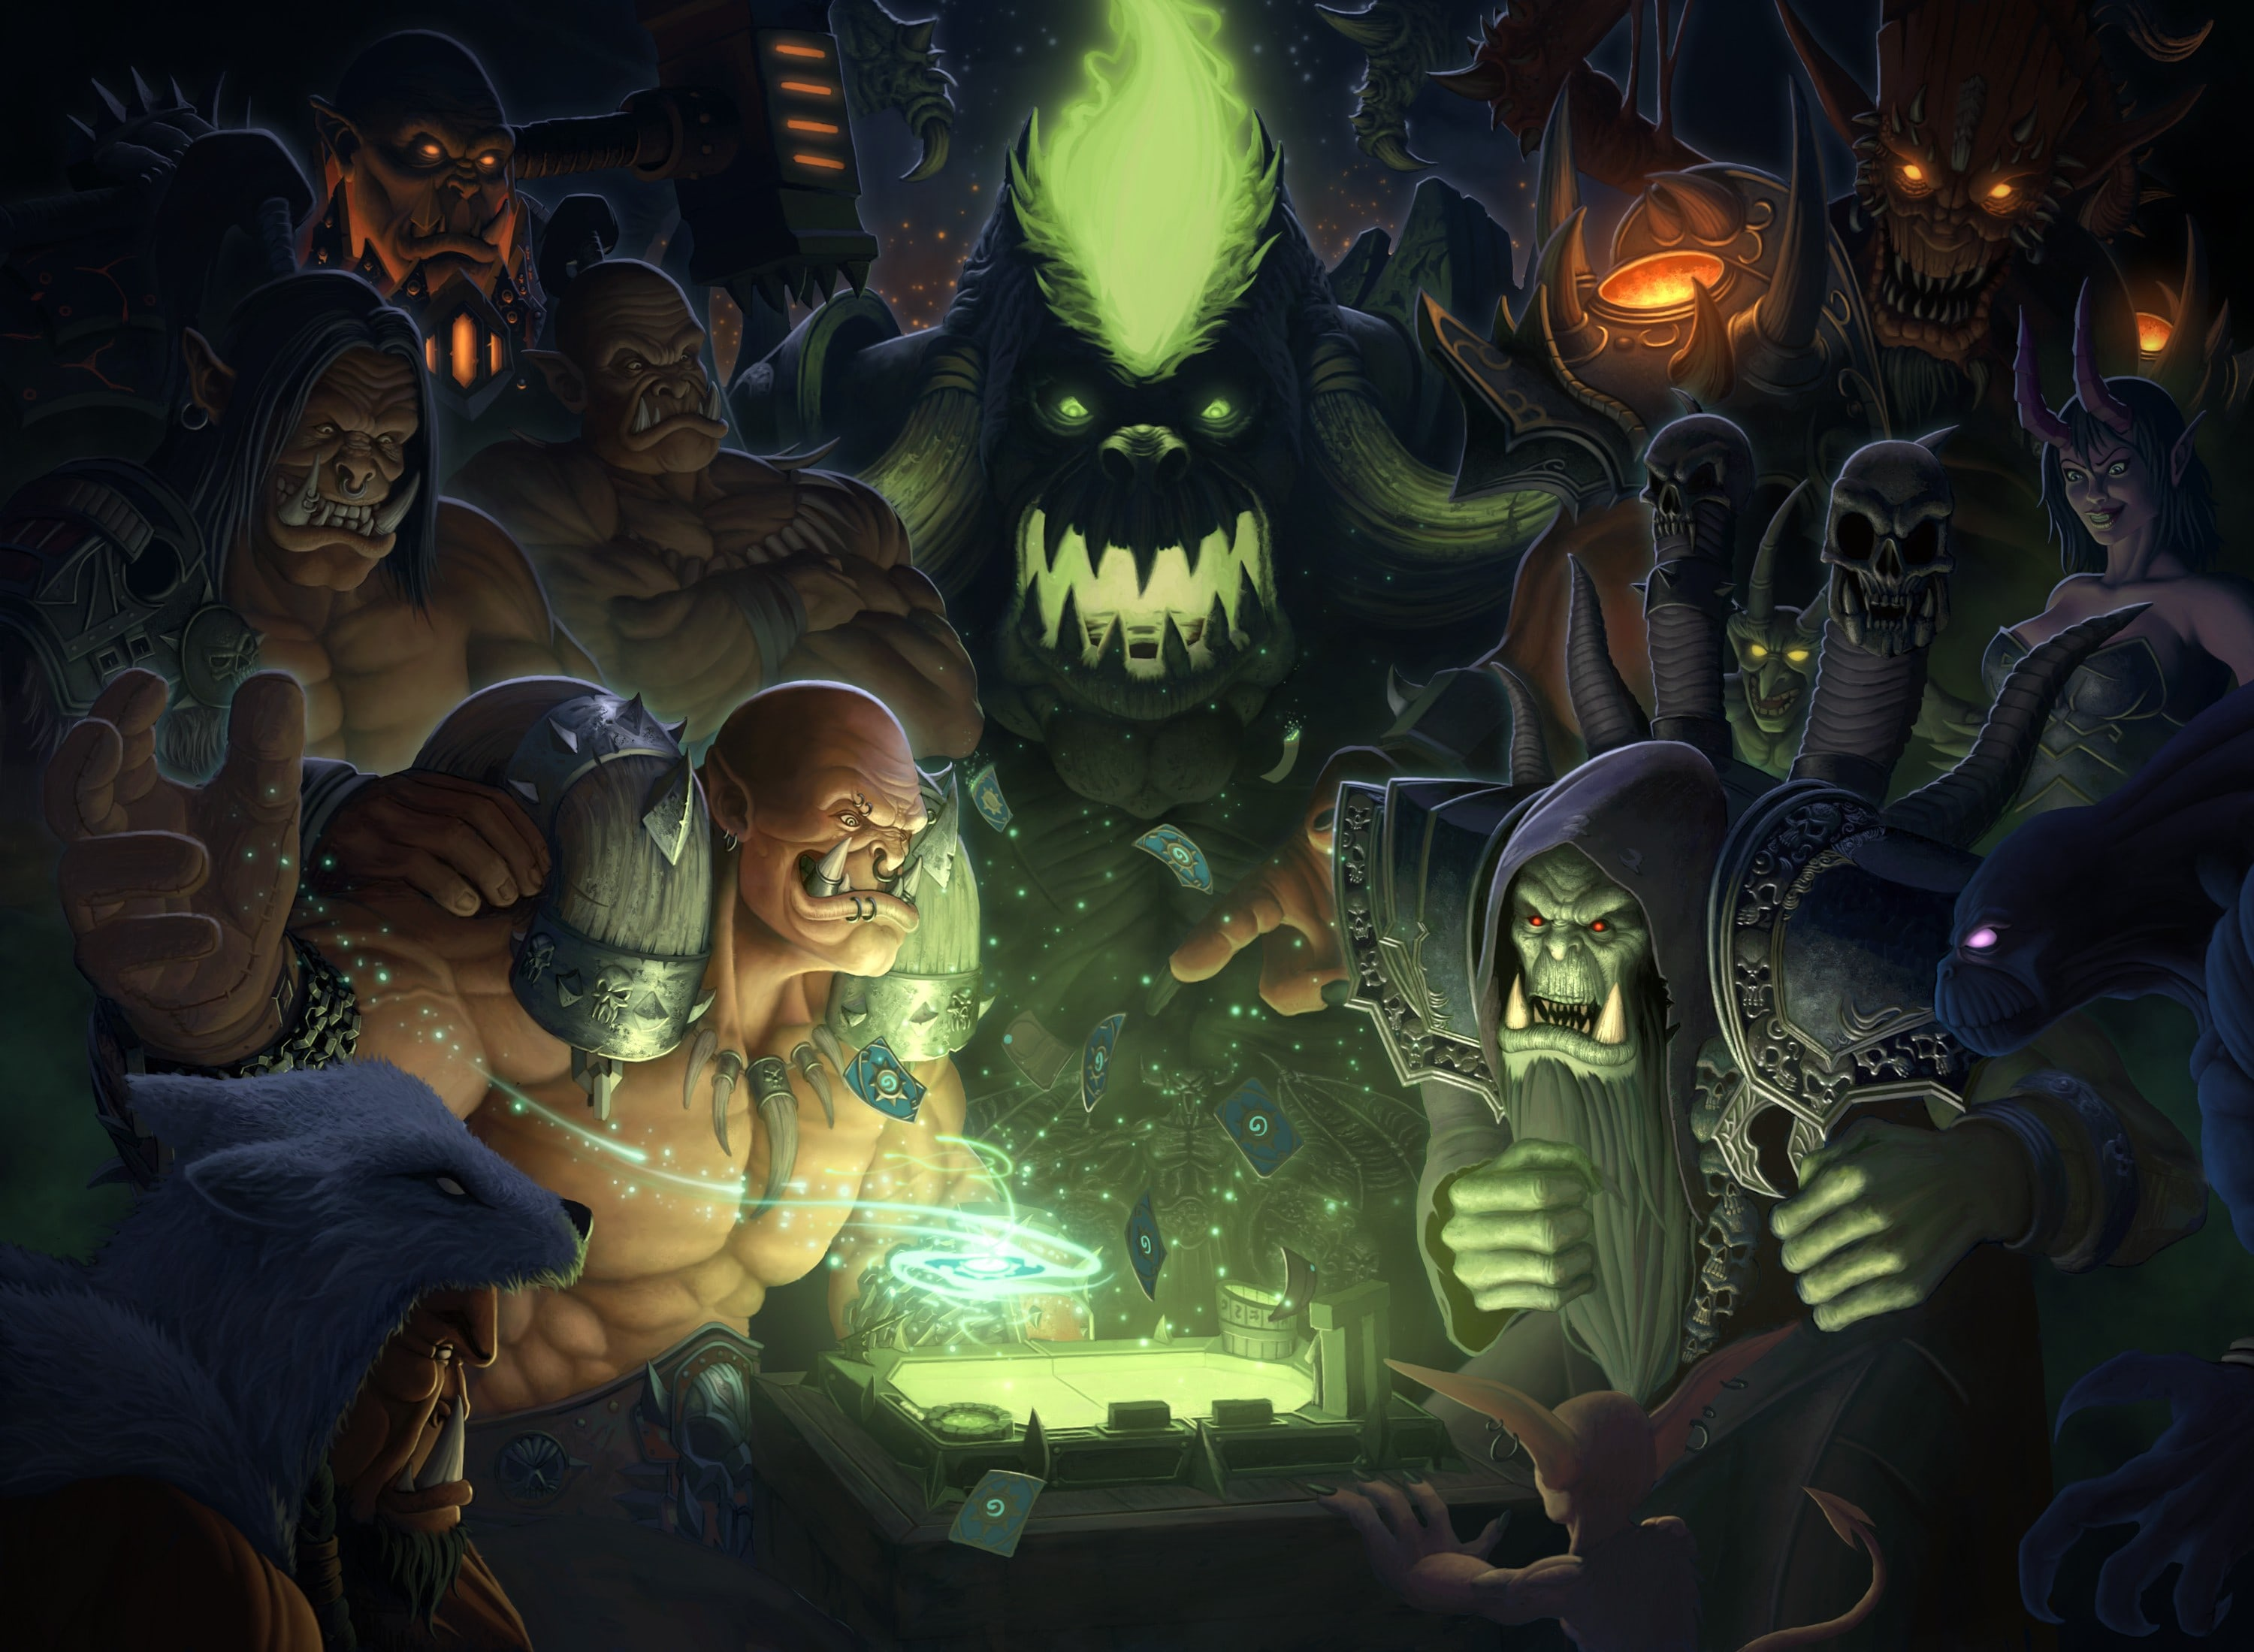 Hearthstone: Heroes Of Warcraft desktop wallpaper